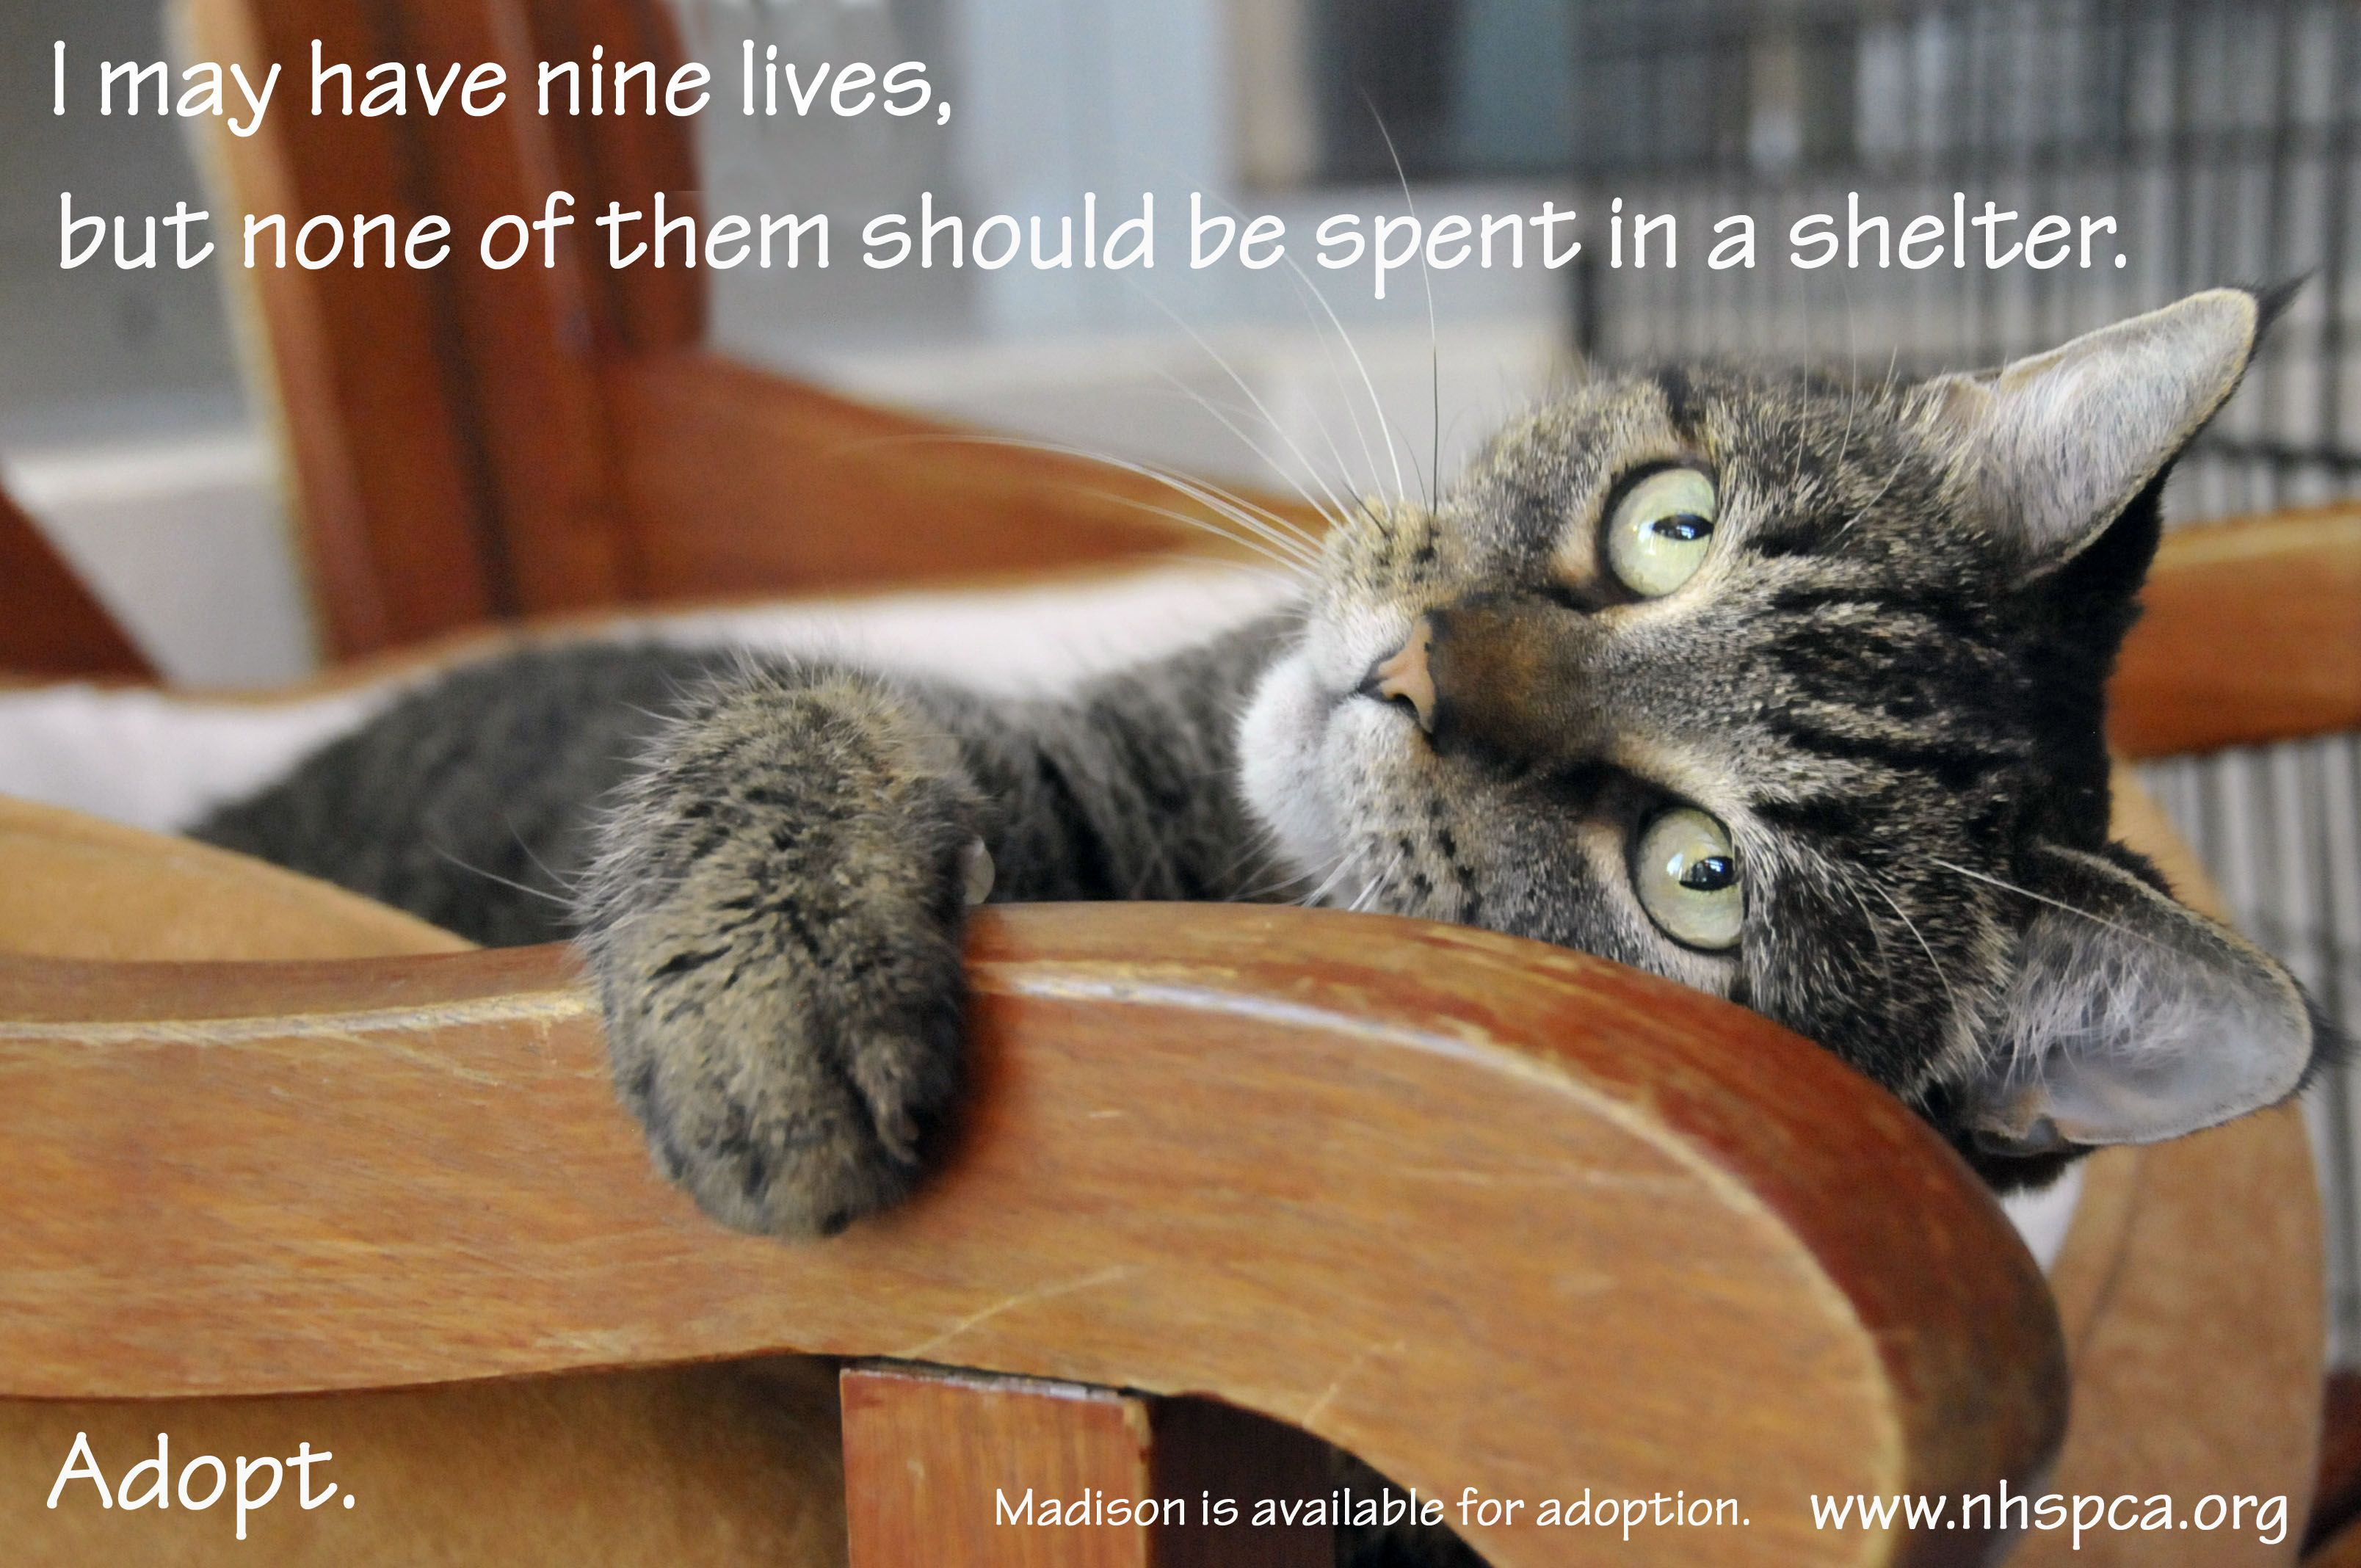 We have too many cats and not enough adopters. Please come